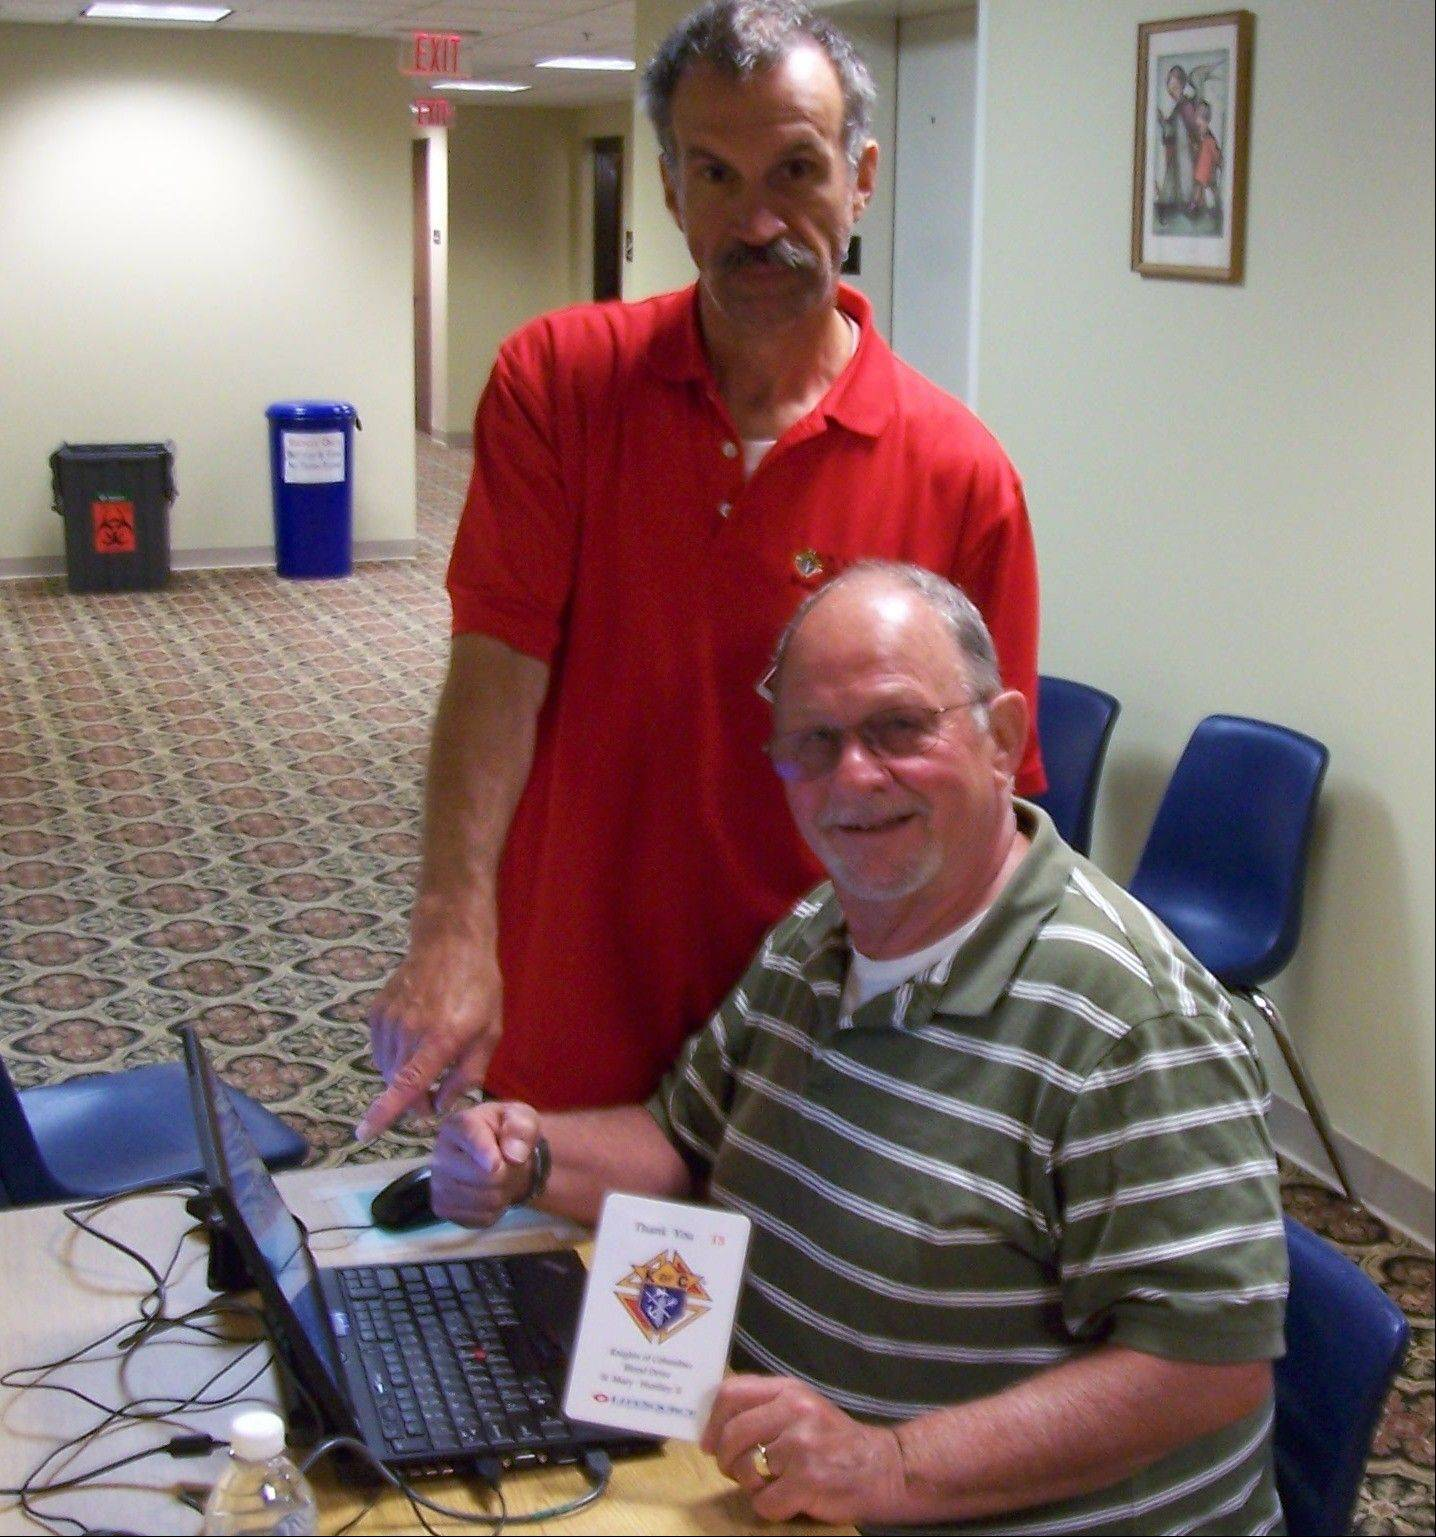 St. Mary Knight of Columbus member Phil Riccio, left, assists fellow member Keith Larsen in registering to donate blood. The quarterly blood drive was successful, with 71 units of blood donated.